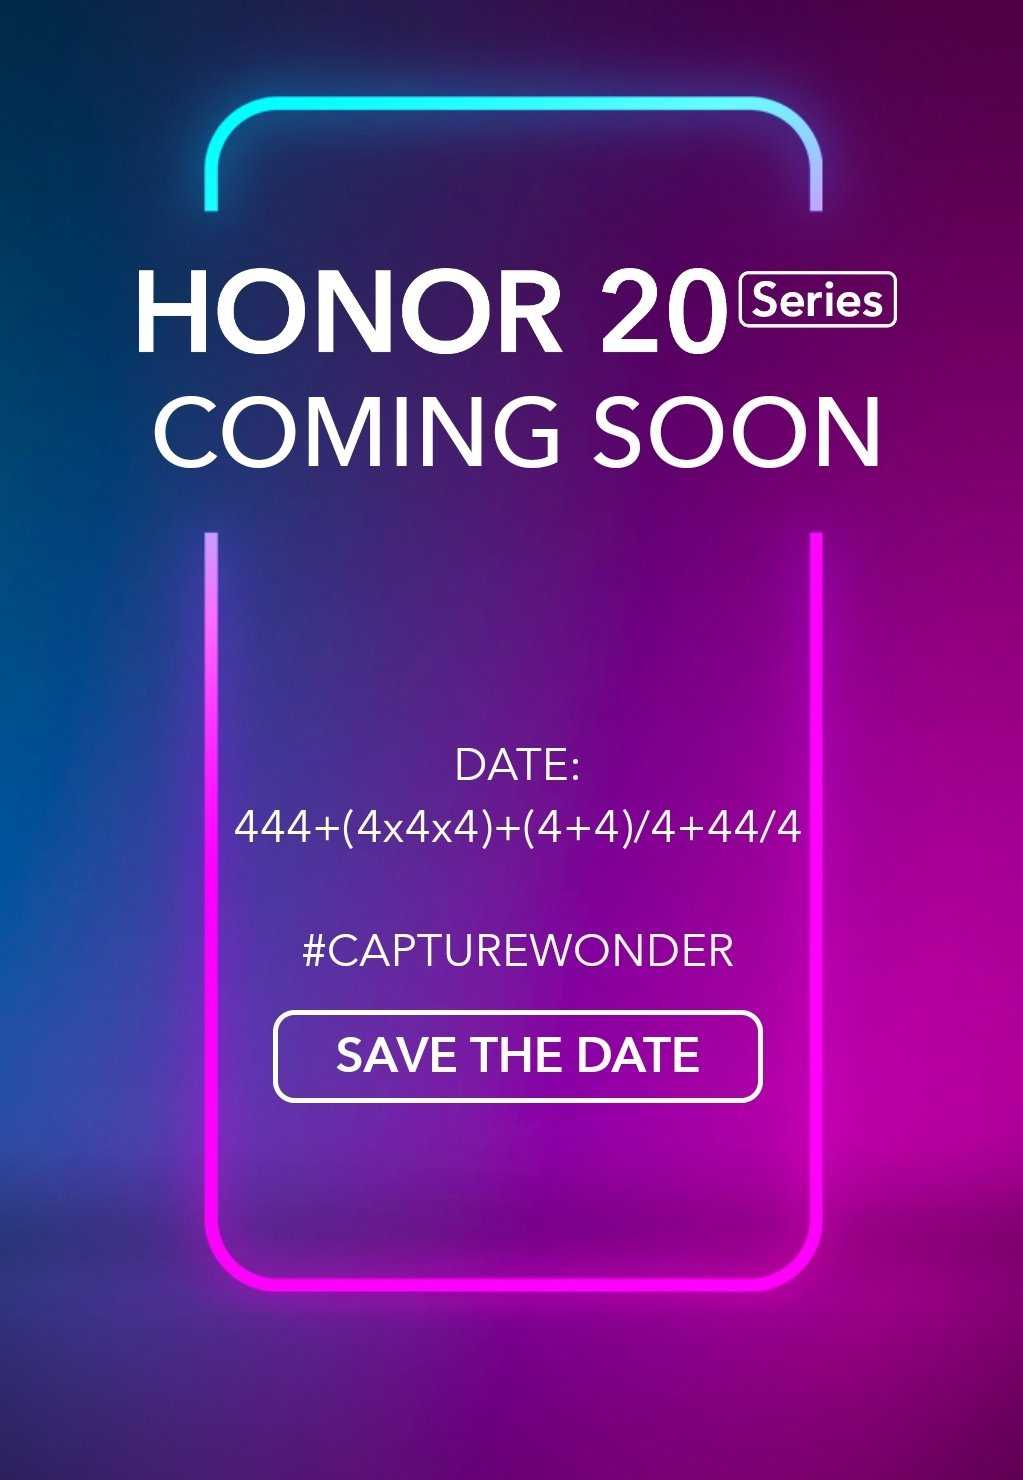 Honor 20 series launch date revealed